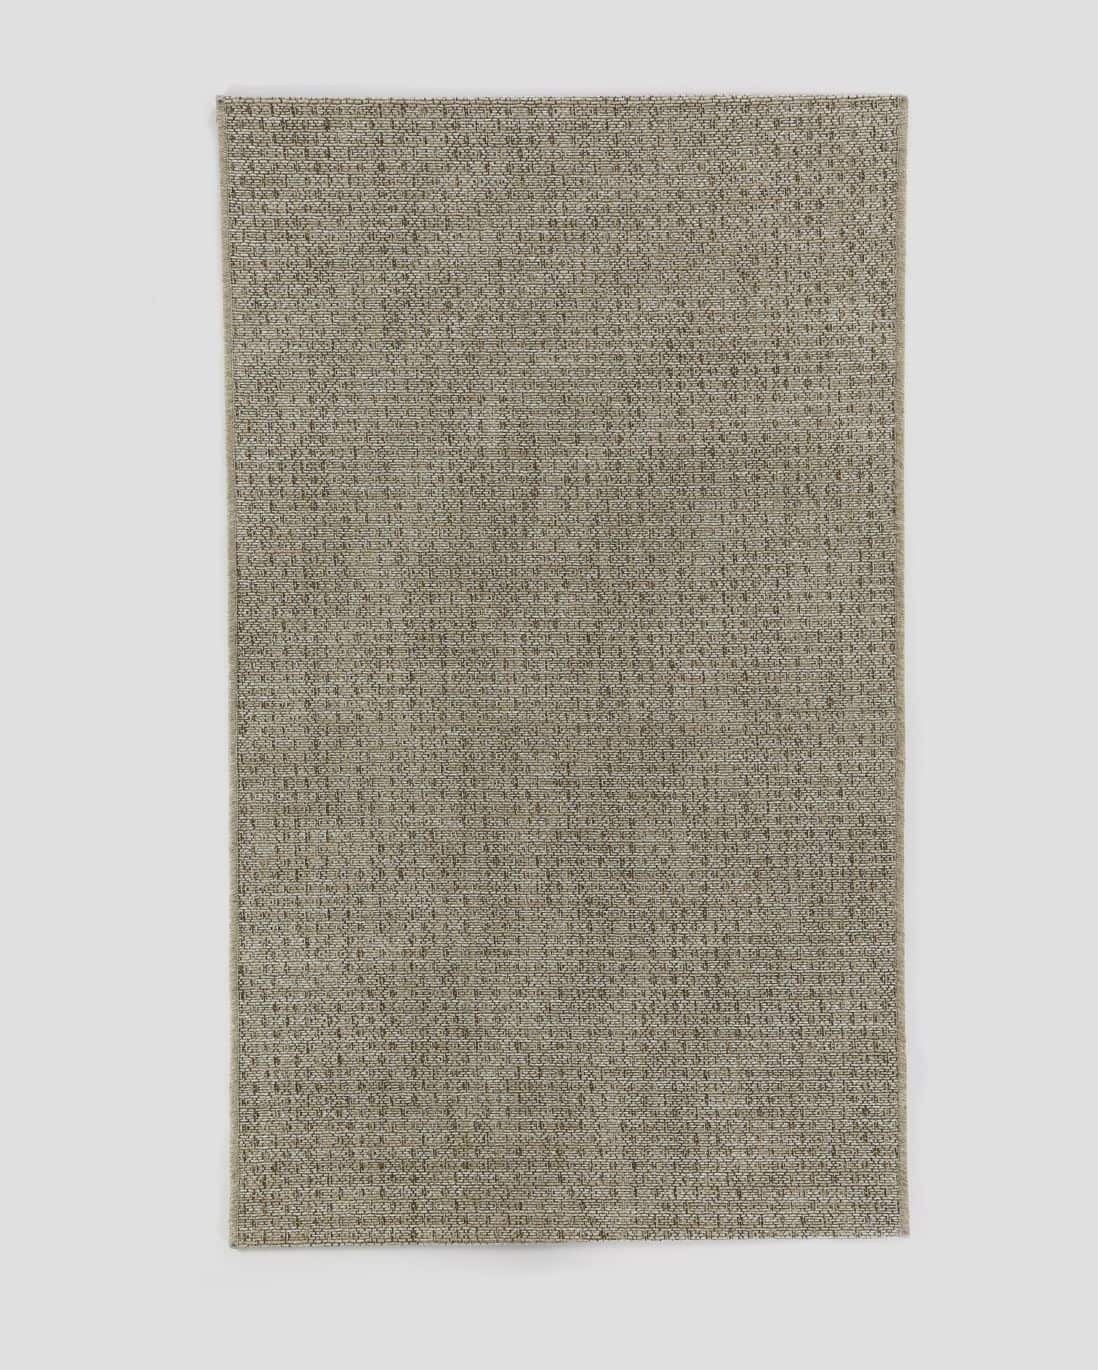 tapete new boucle tabaco 1 x 1 6 m foto: still